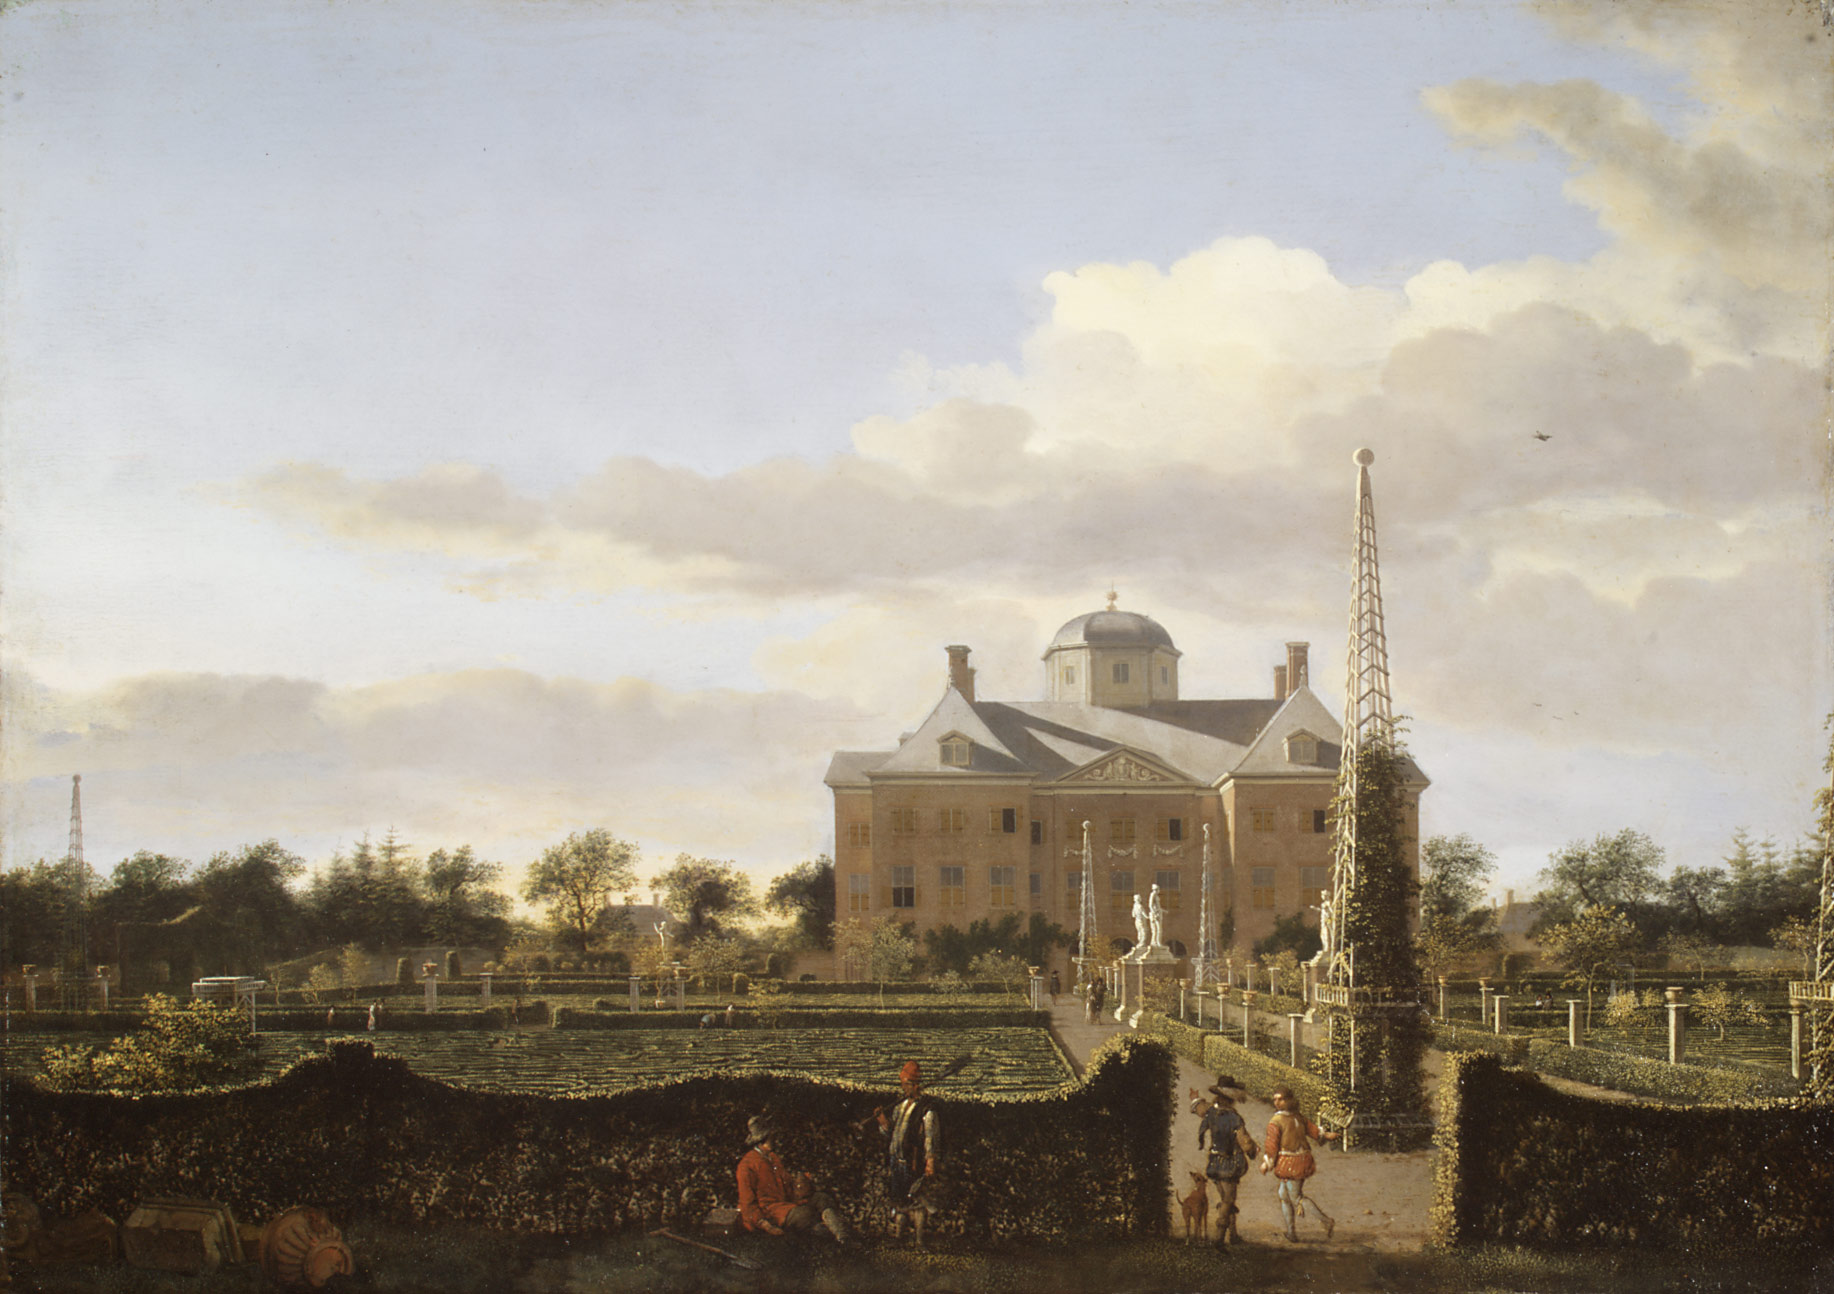 The Huis ten Bosch at The Hague and Its Formal Garden (View from the South)